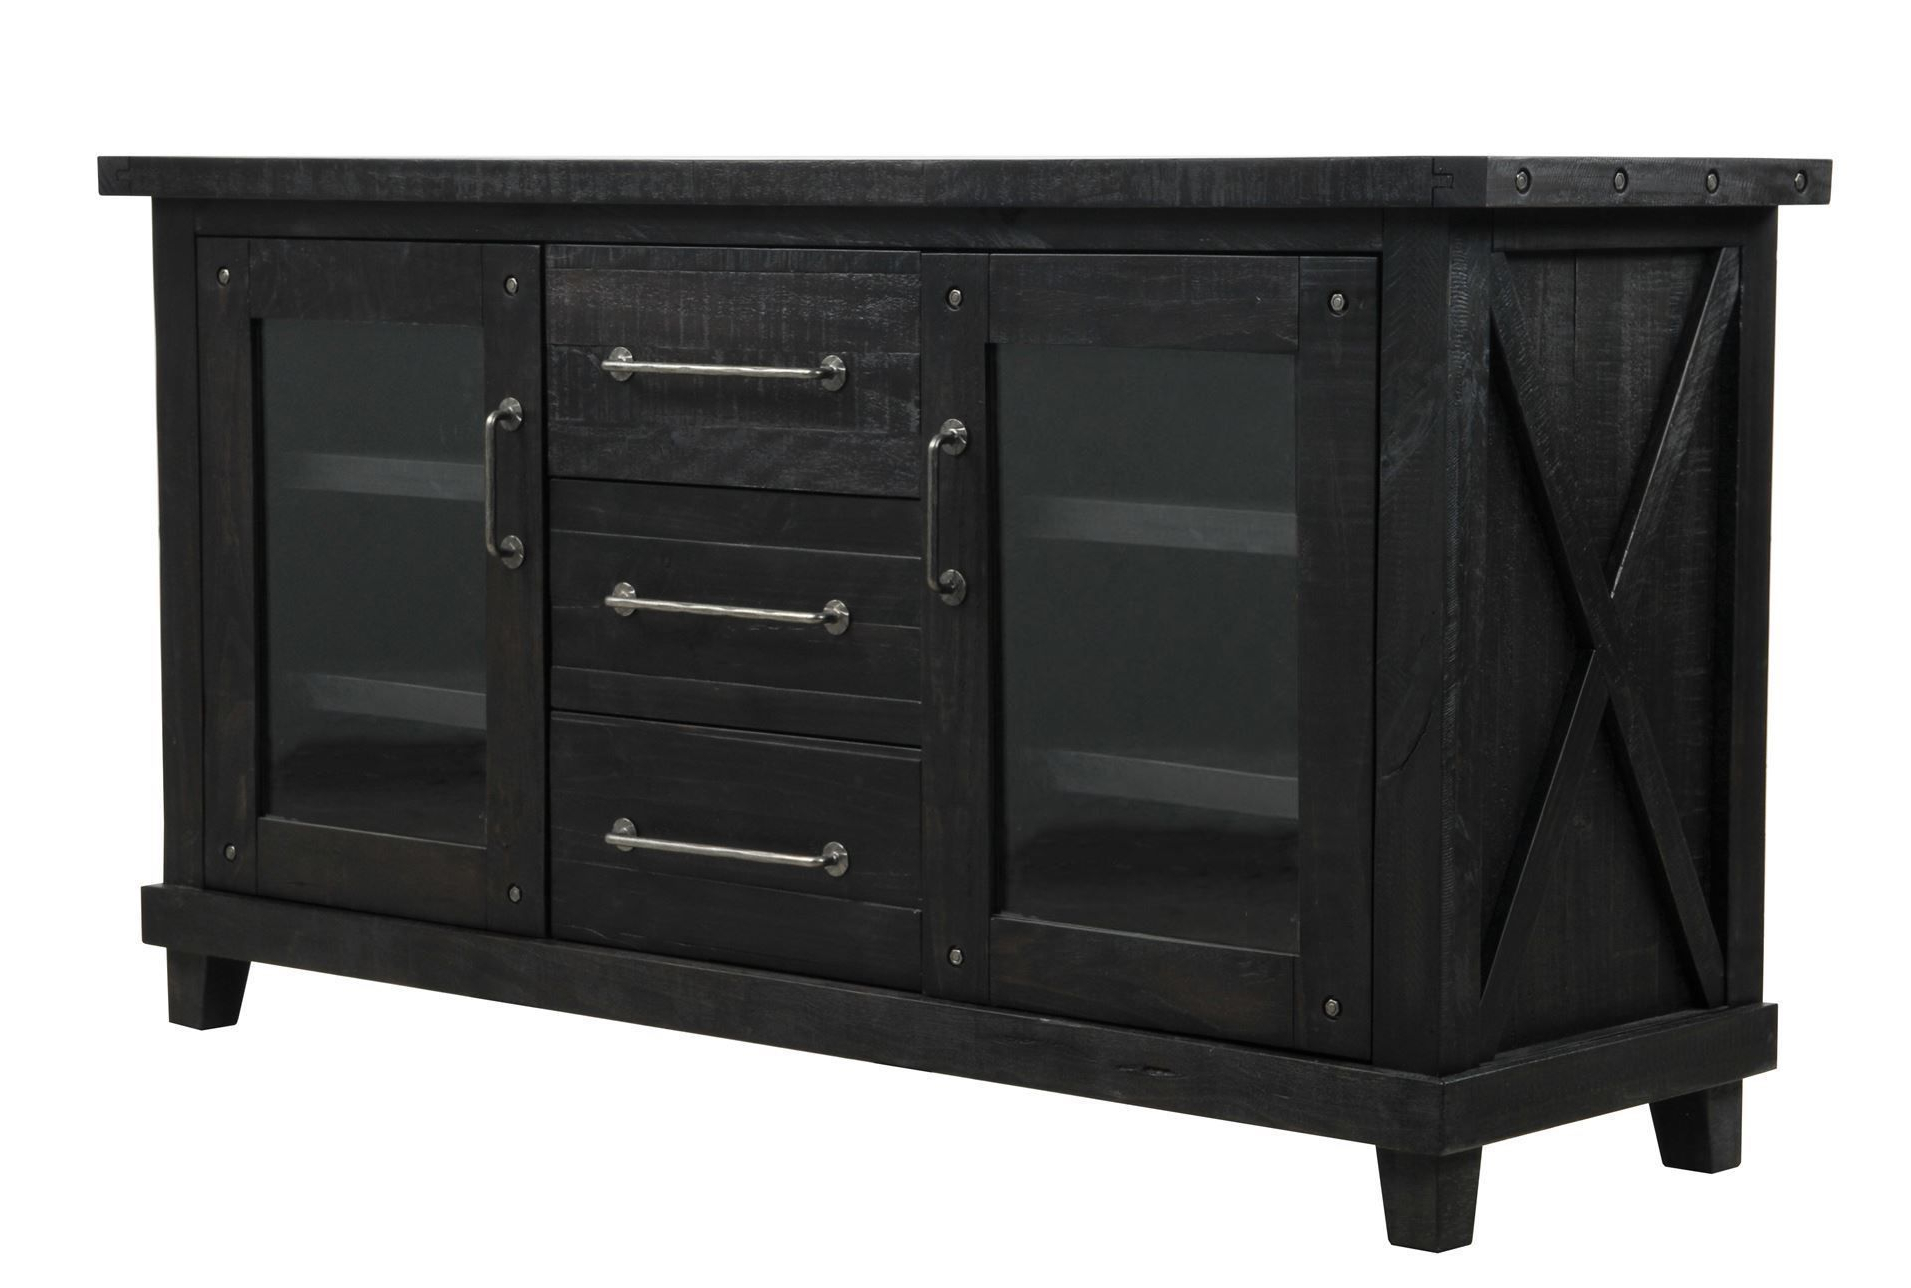 Jaxon Sideboard | Selena Design | Sideboard Decor, Sideboard Intended For Saint Gratien Sideboards (View 5 of 20)